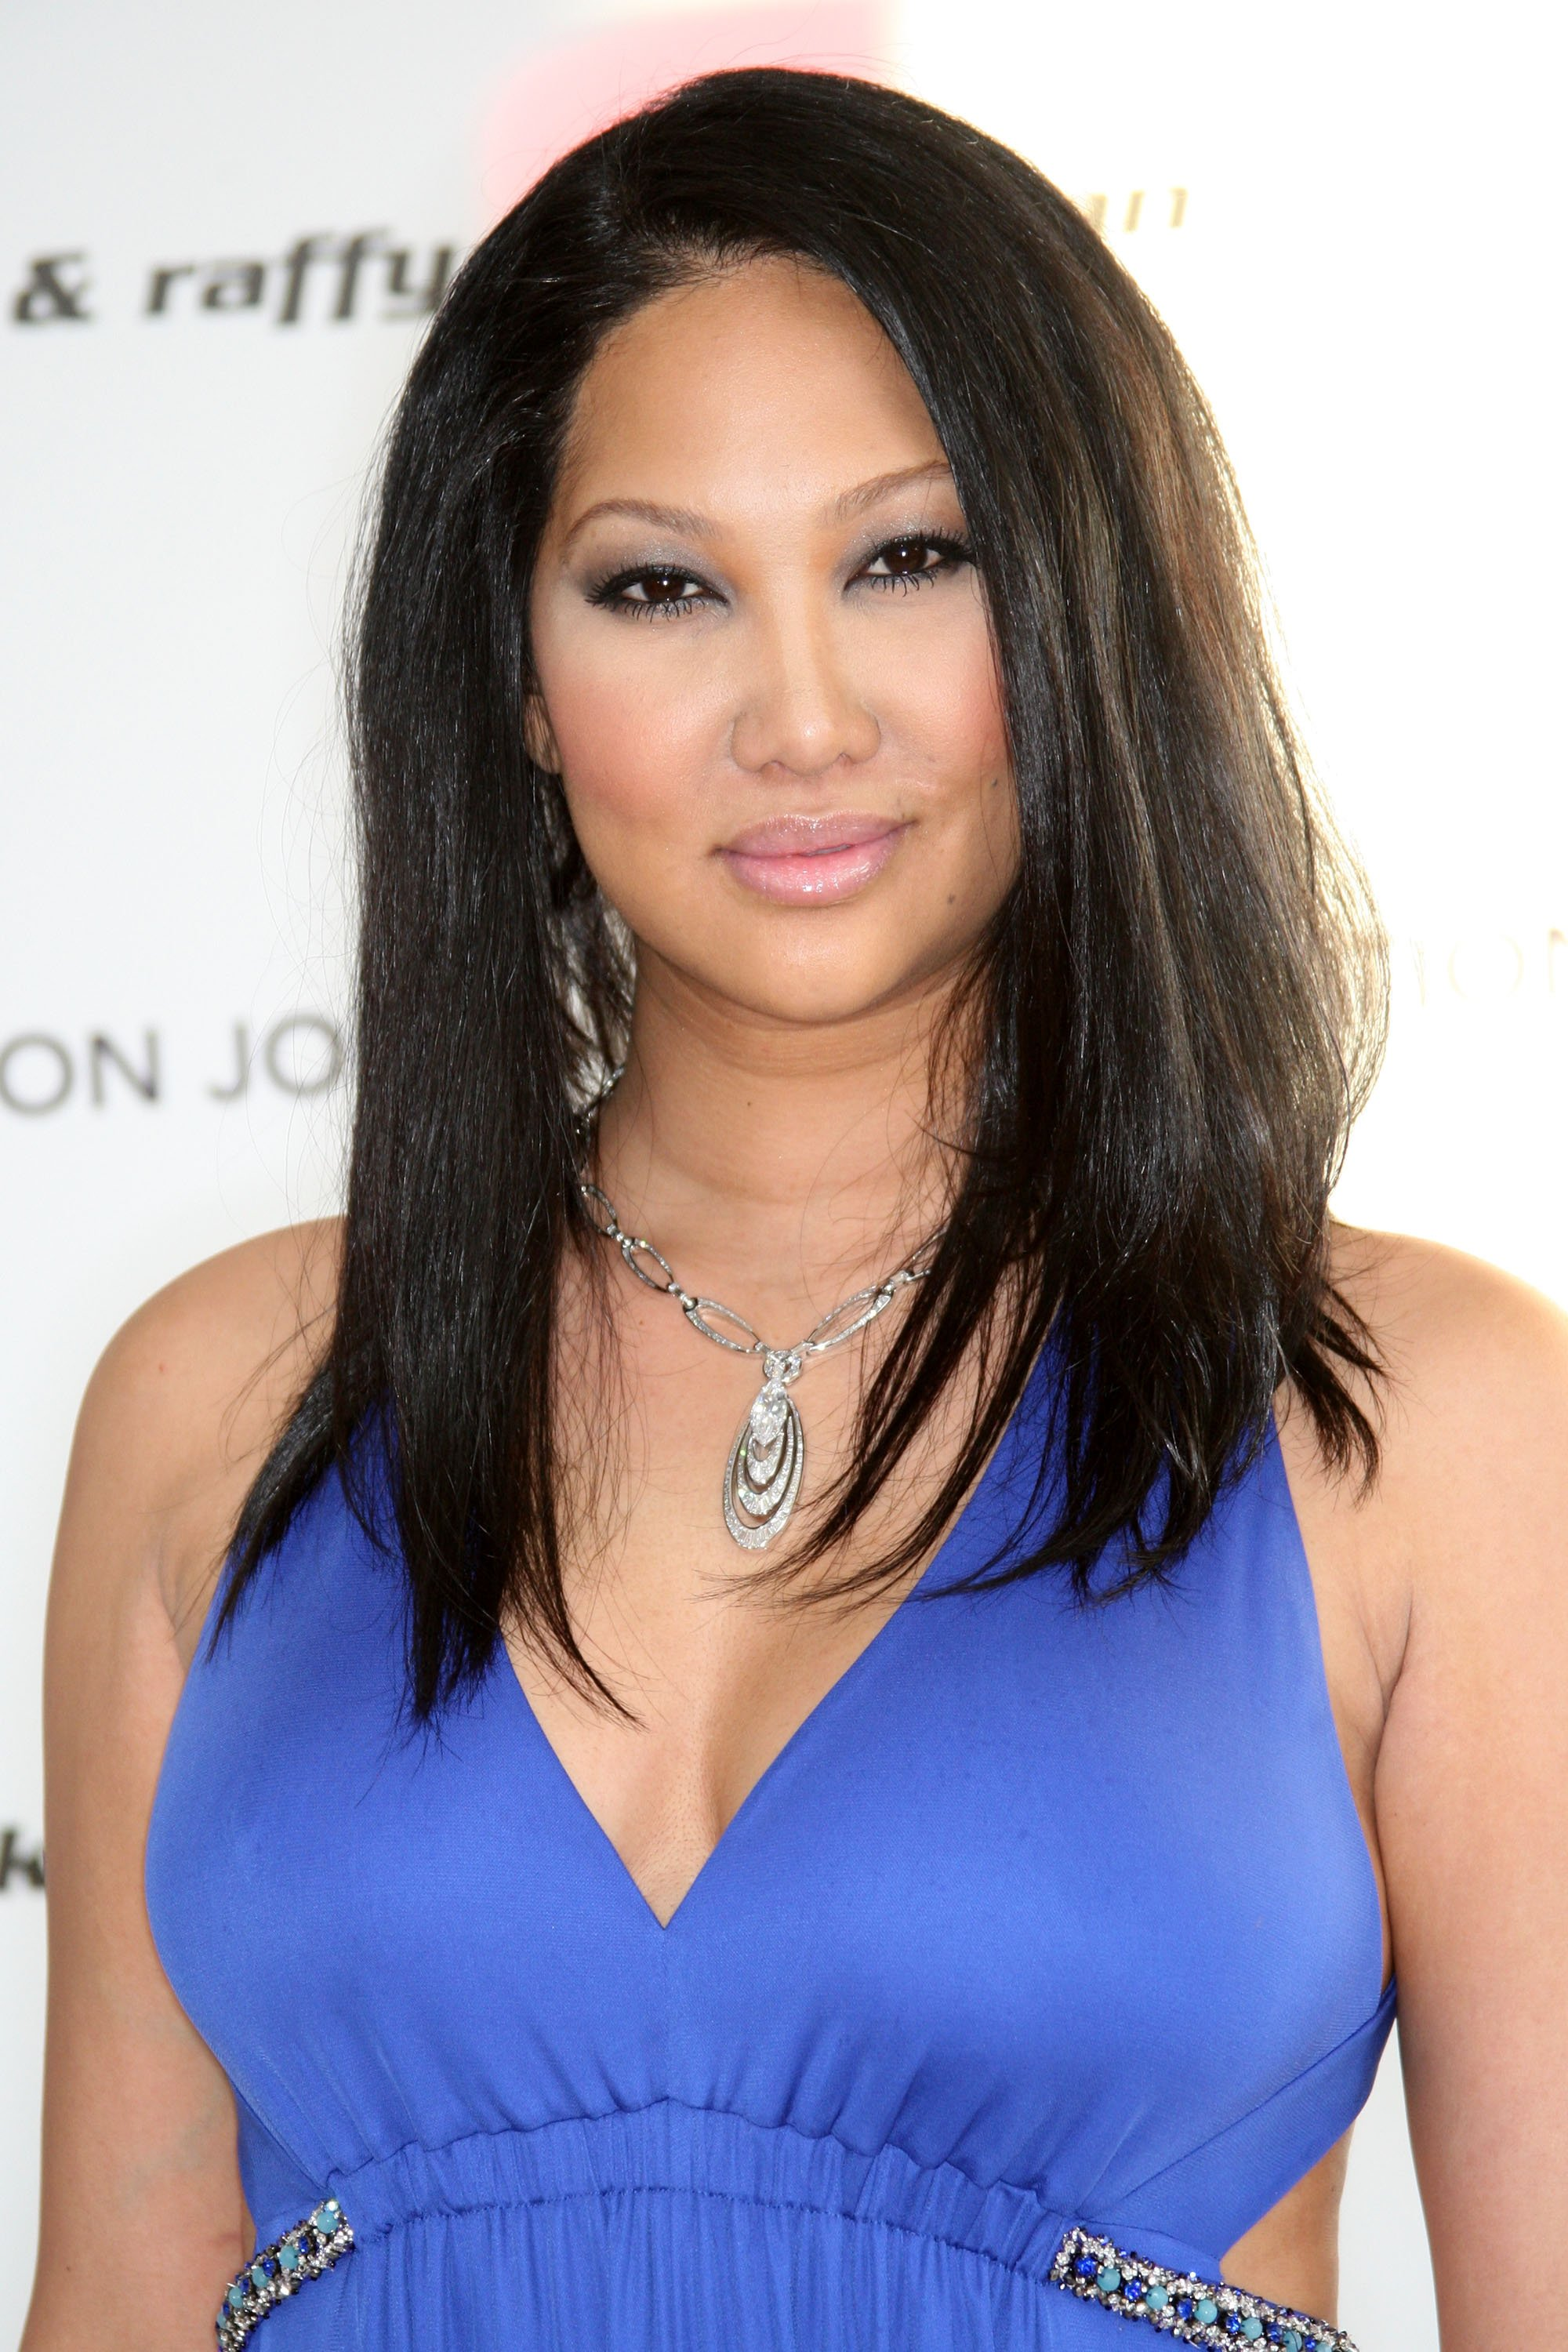 Kimora Lee Simmons at the 18th Annual Elton John AIDS Foundation's Oscar Viewing Party in March 2010. | Photo: Getty Images